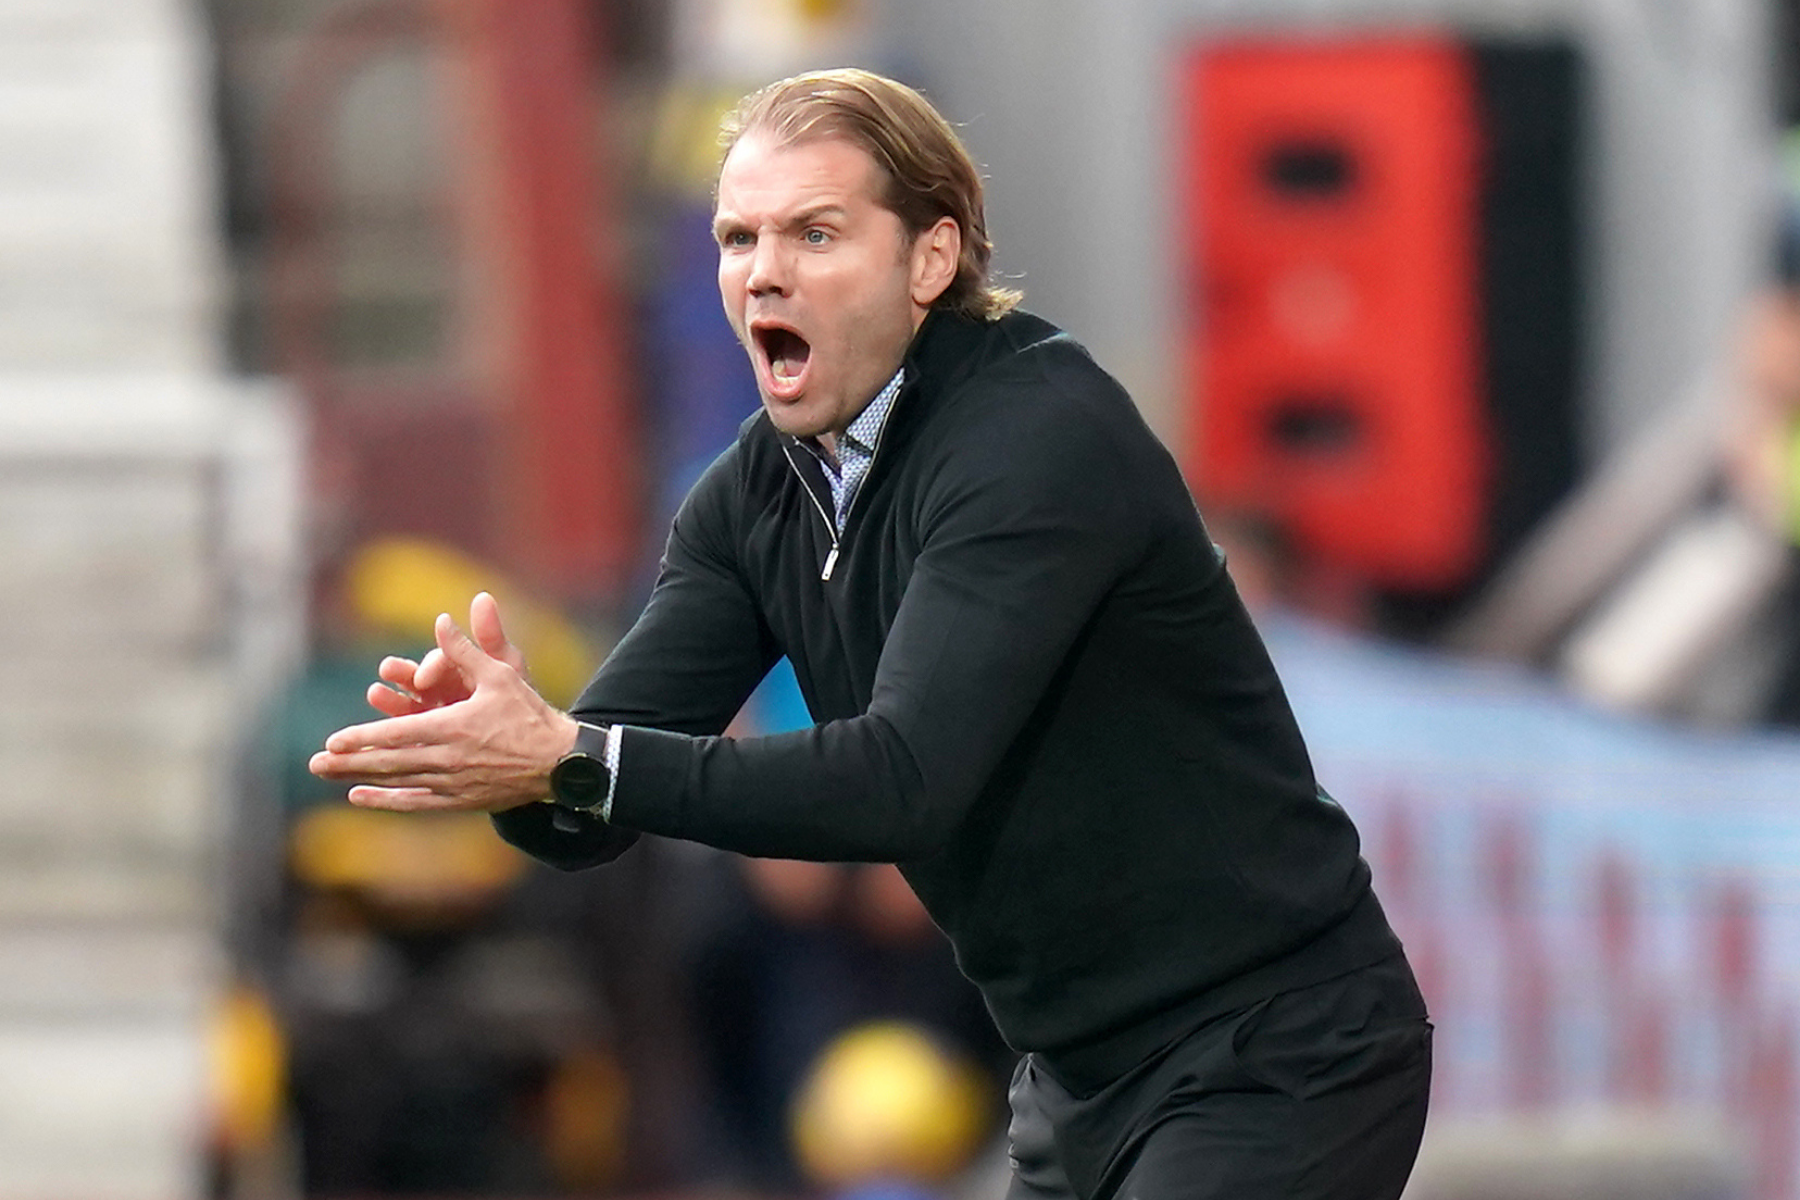 Hearts boss Robbie Neilson insists Rangers flashpoint was case of 'Glasgow long blink'